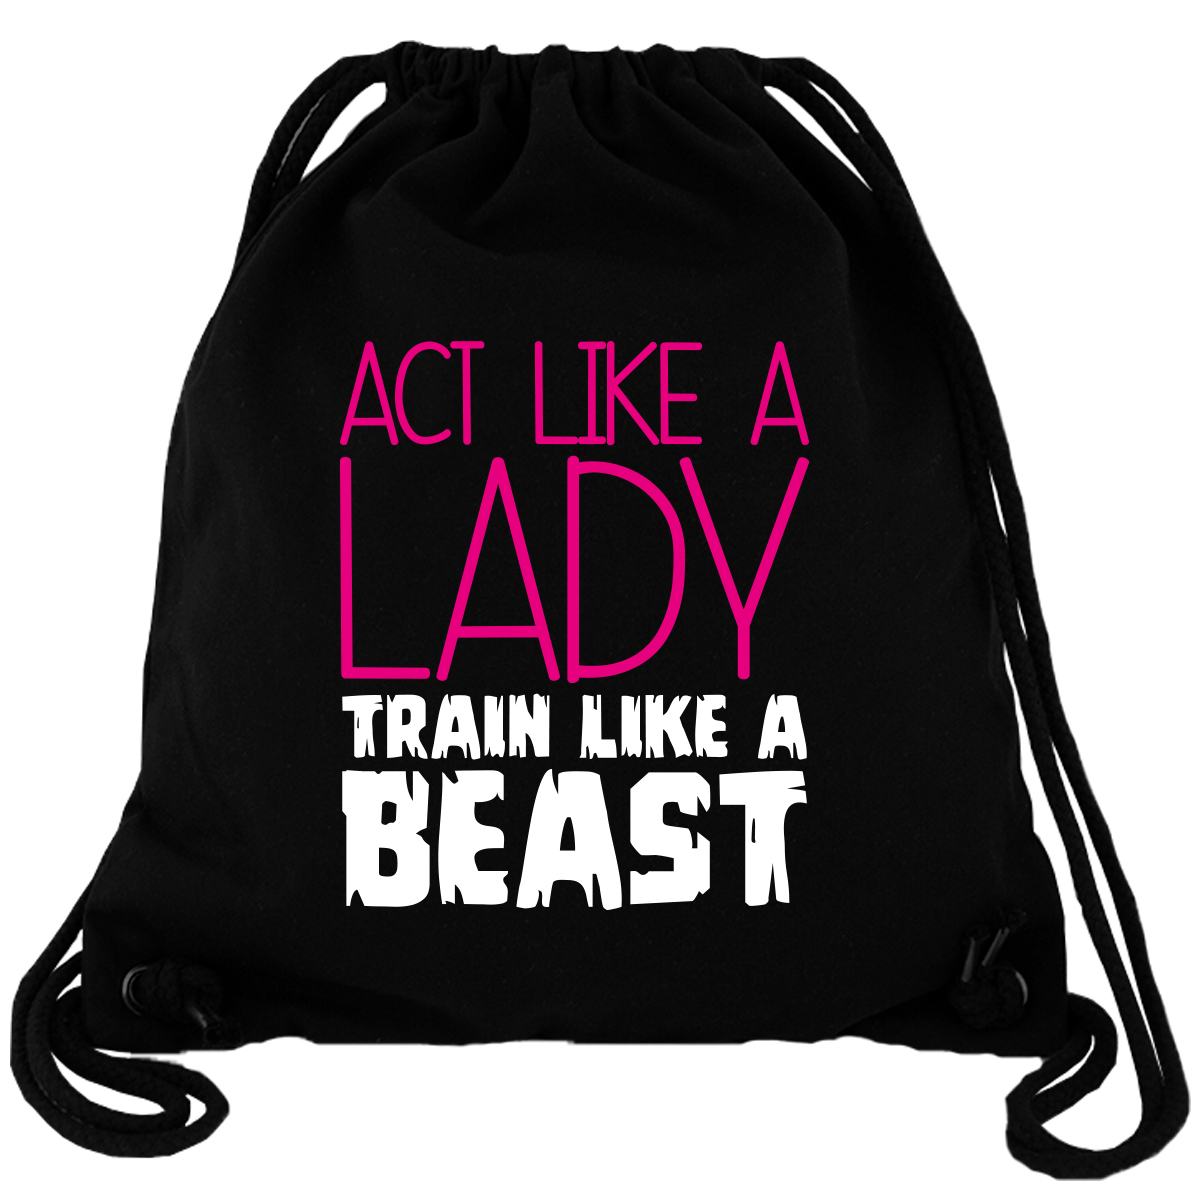 Act Like A Lady Train Like A Beast - Gym Bag Turnbeutel